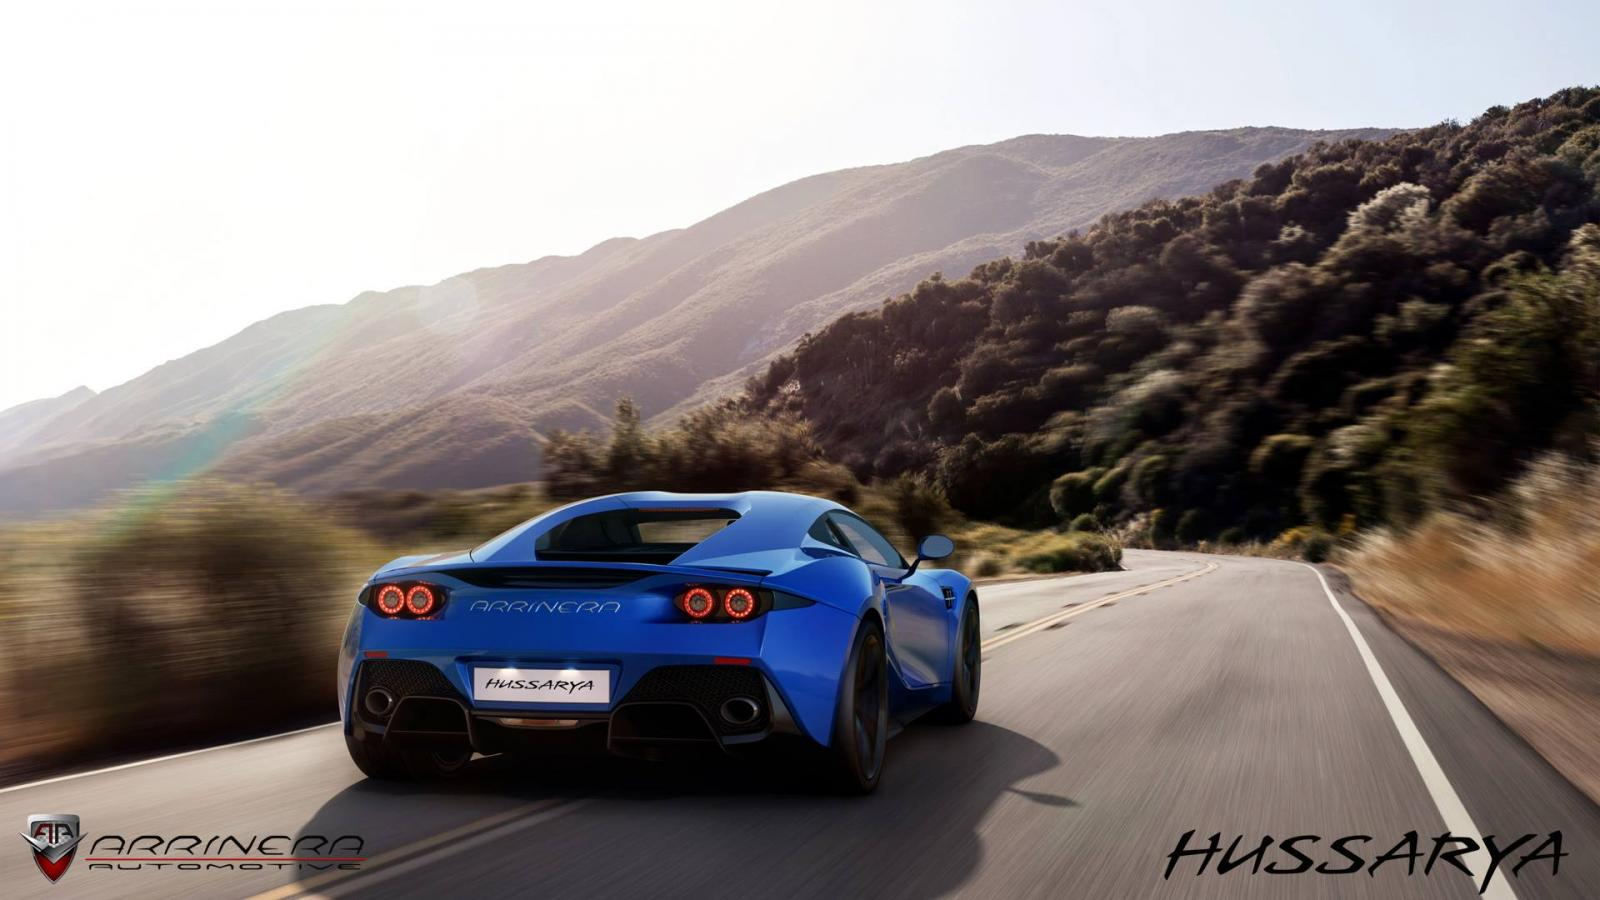 Arrinera Hussarya Supercar Rear Forcegt Com